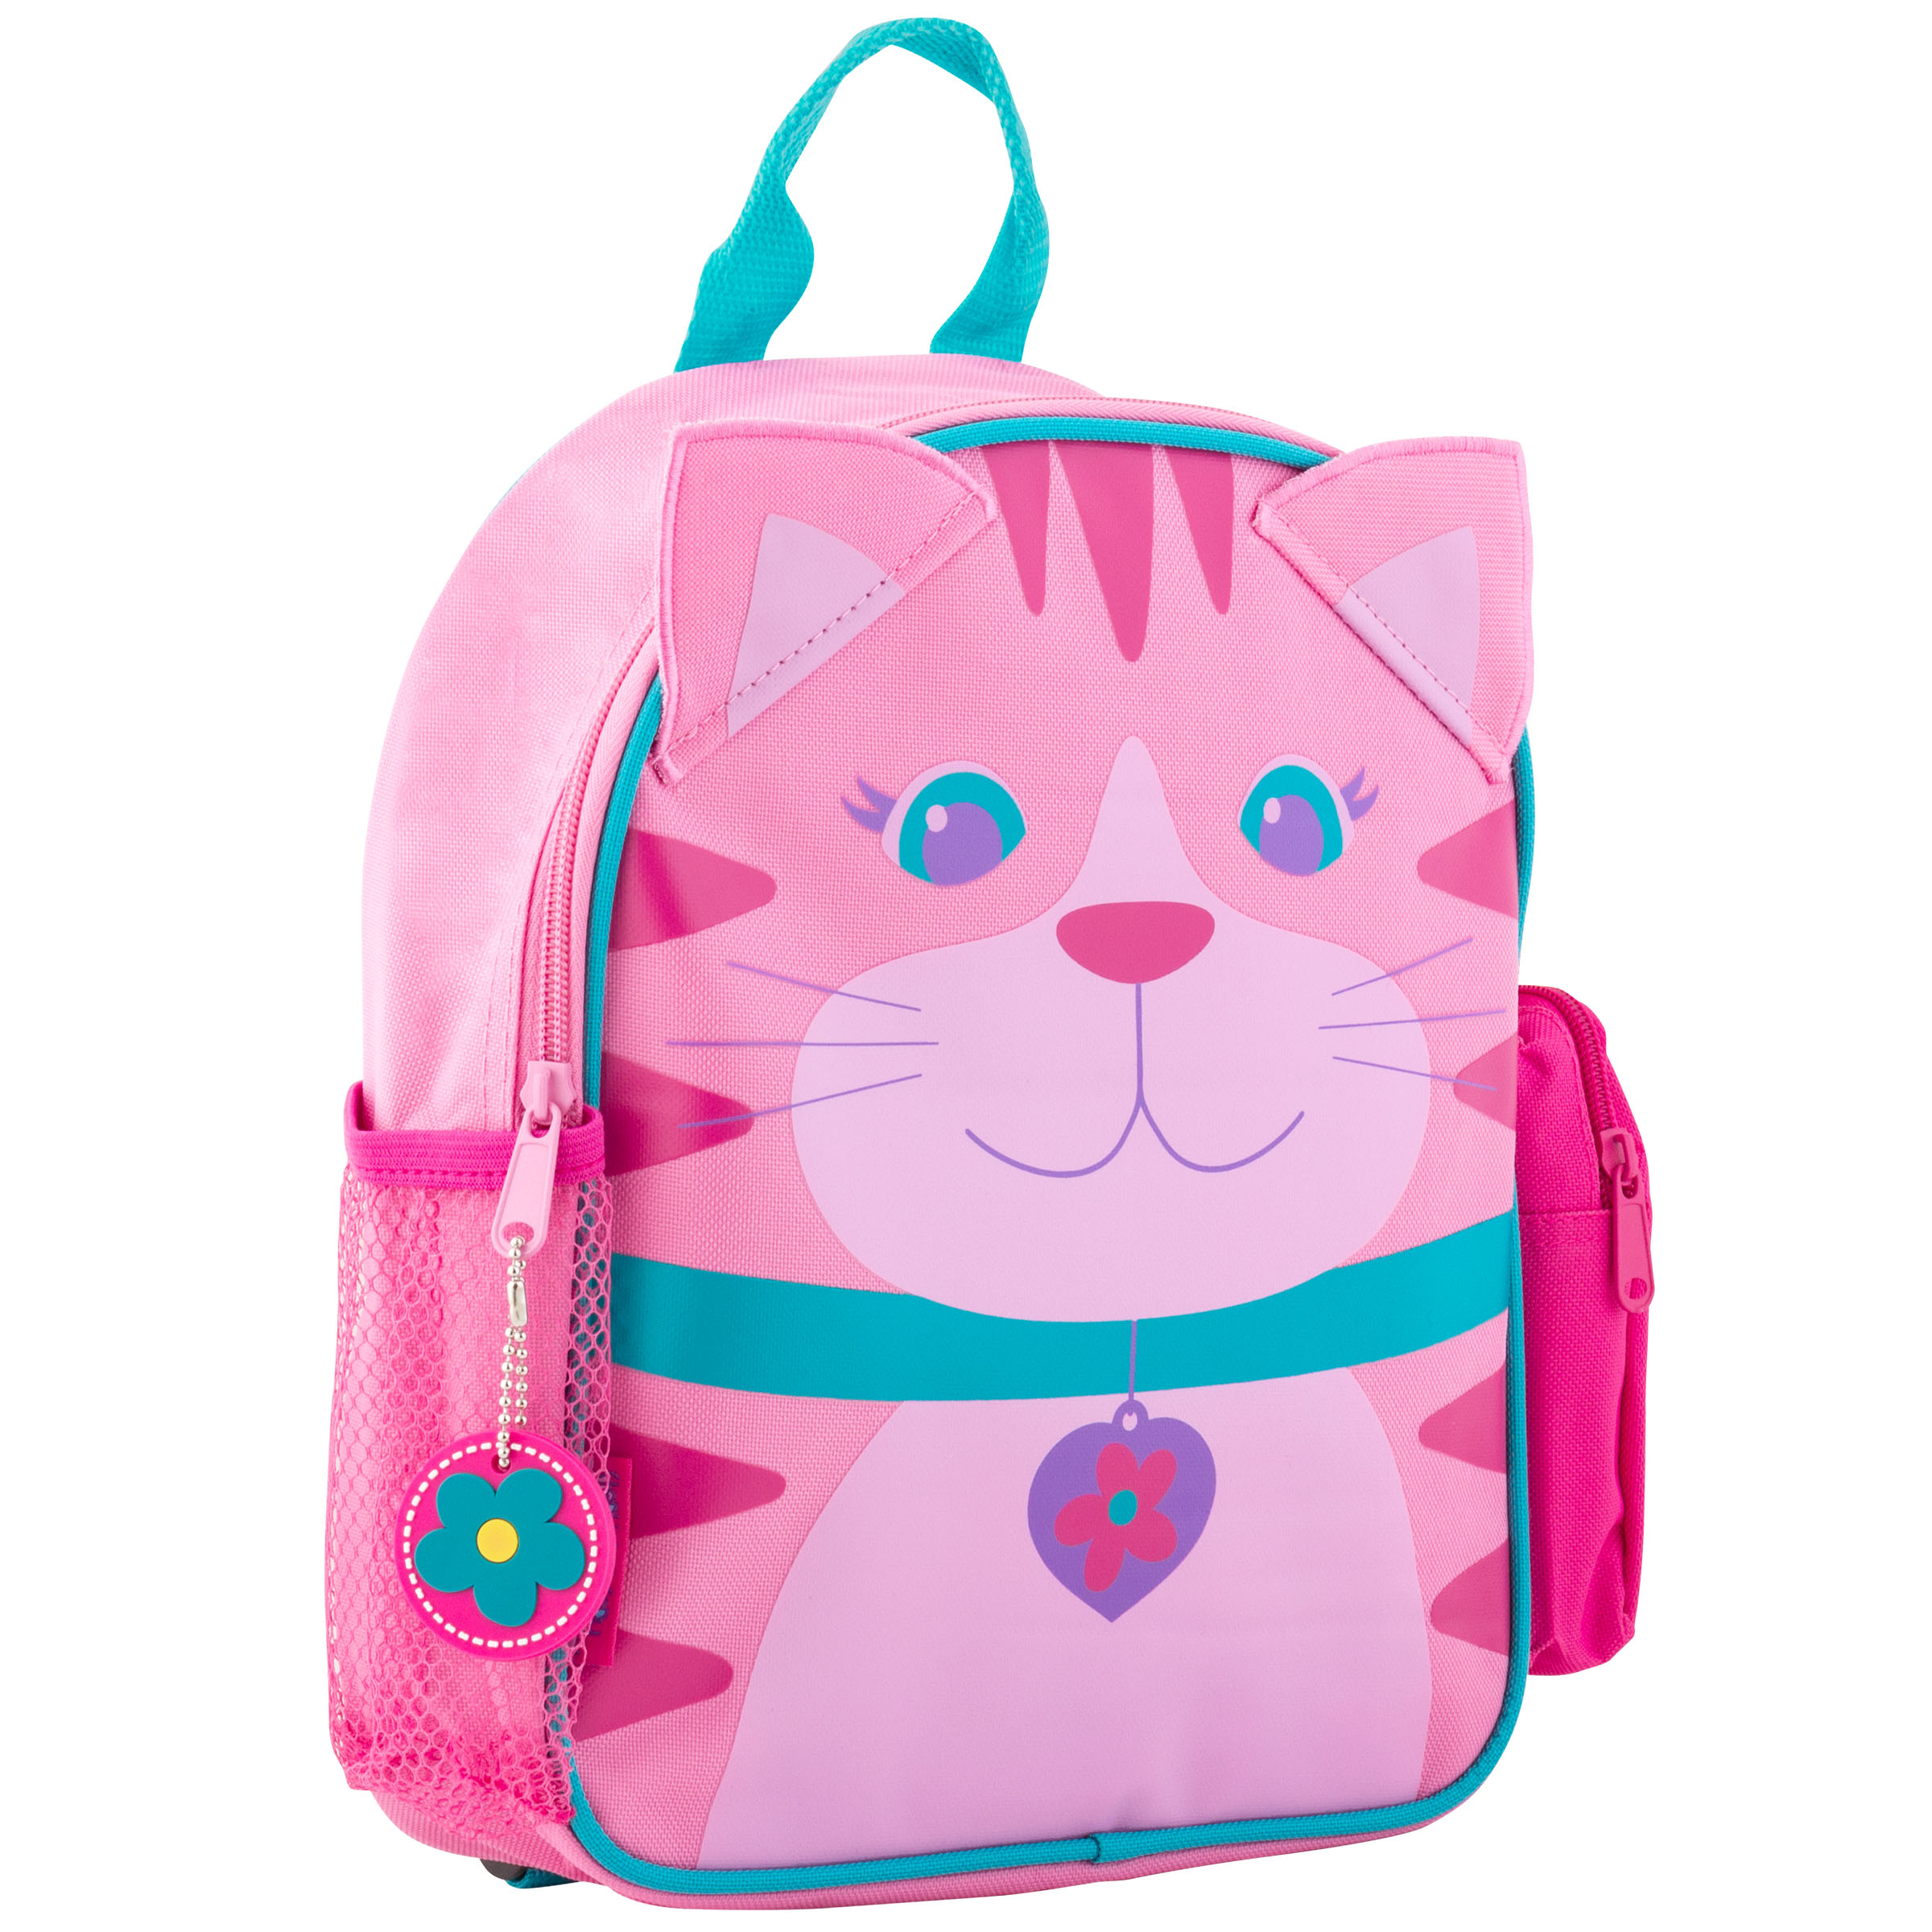 Stephen Joseph - Mini Sidekick Backpack,